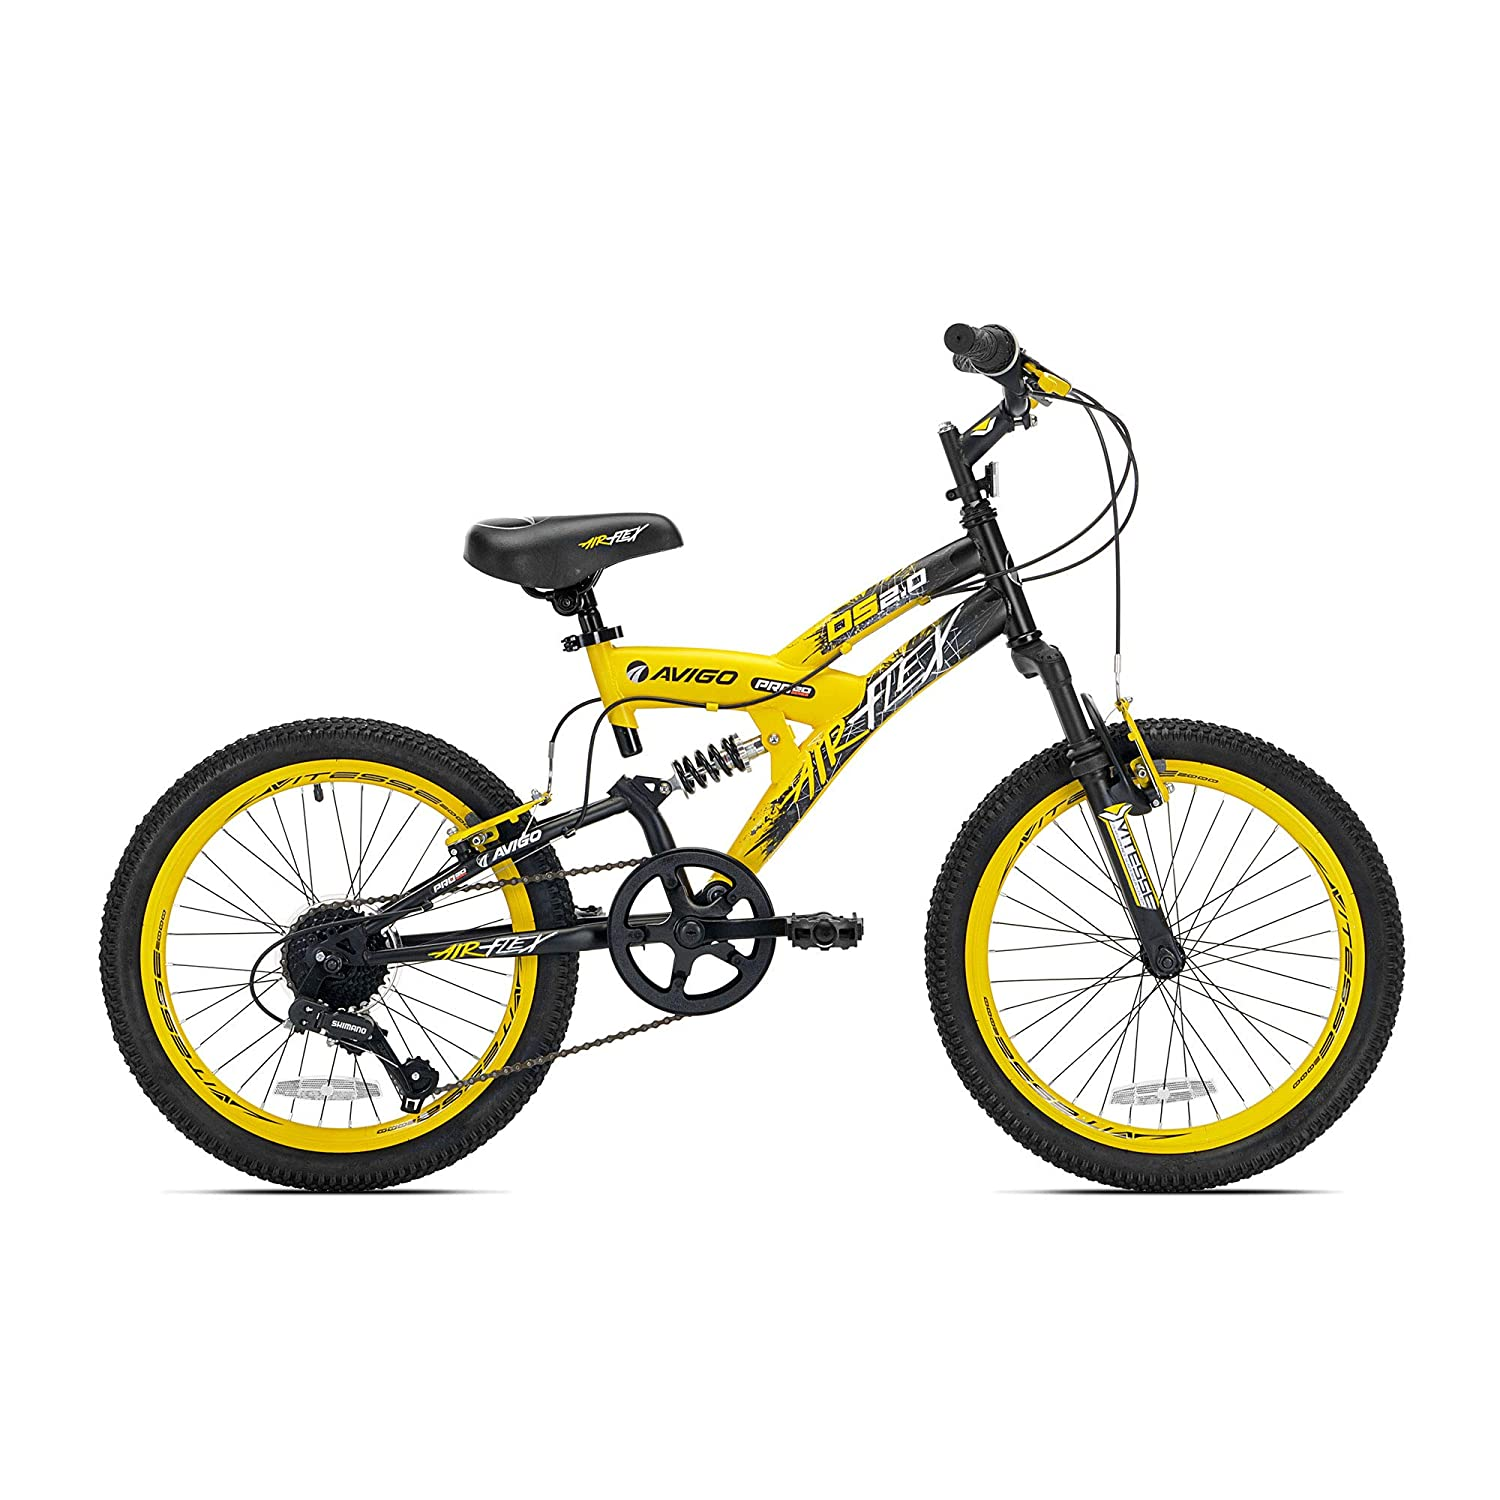 20 Boys Avigo Air Flex Dual Suspension - Yellow Black - Balance Bike - Ride-ons - Outdoor Sports - Air Flex Dual Suspension - Long-lasting Quality and Saving Value - Built with the Latest Bicycle Safety Features